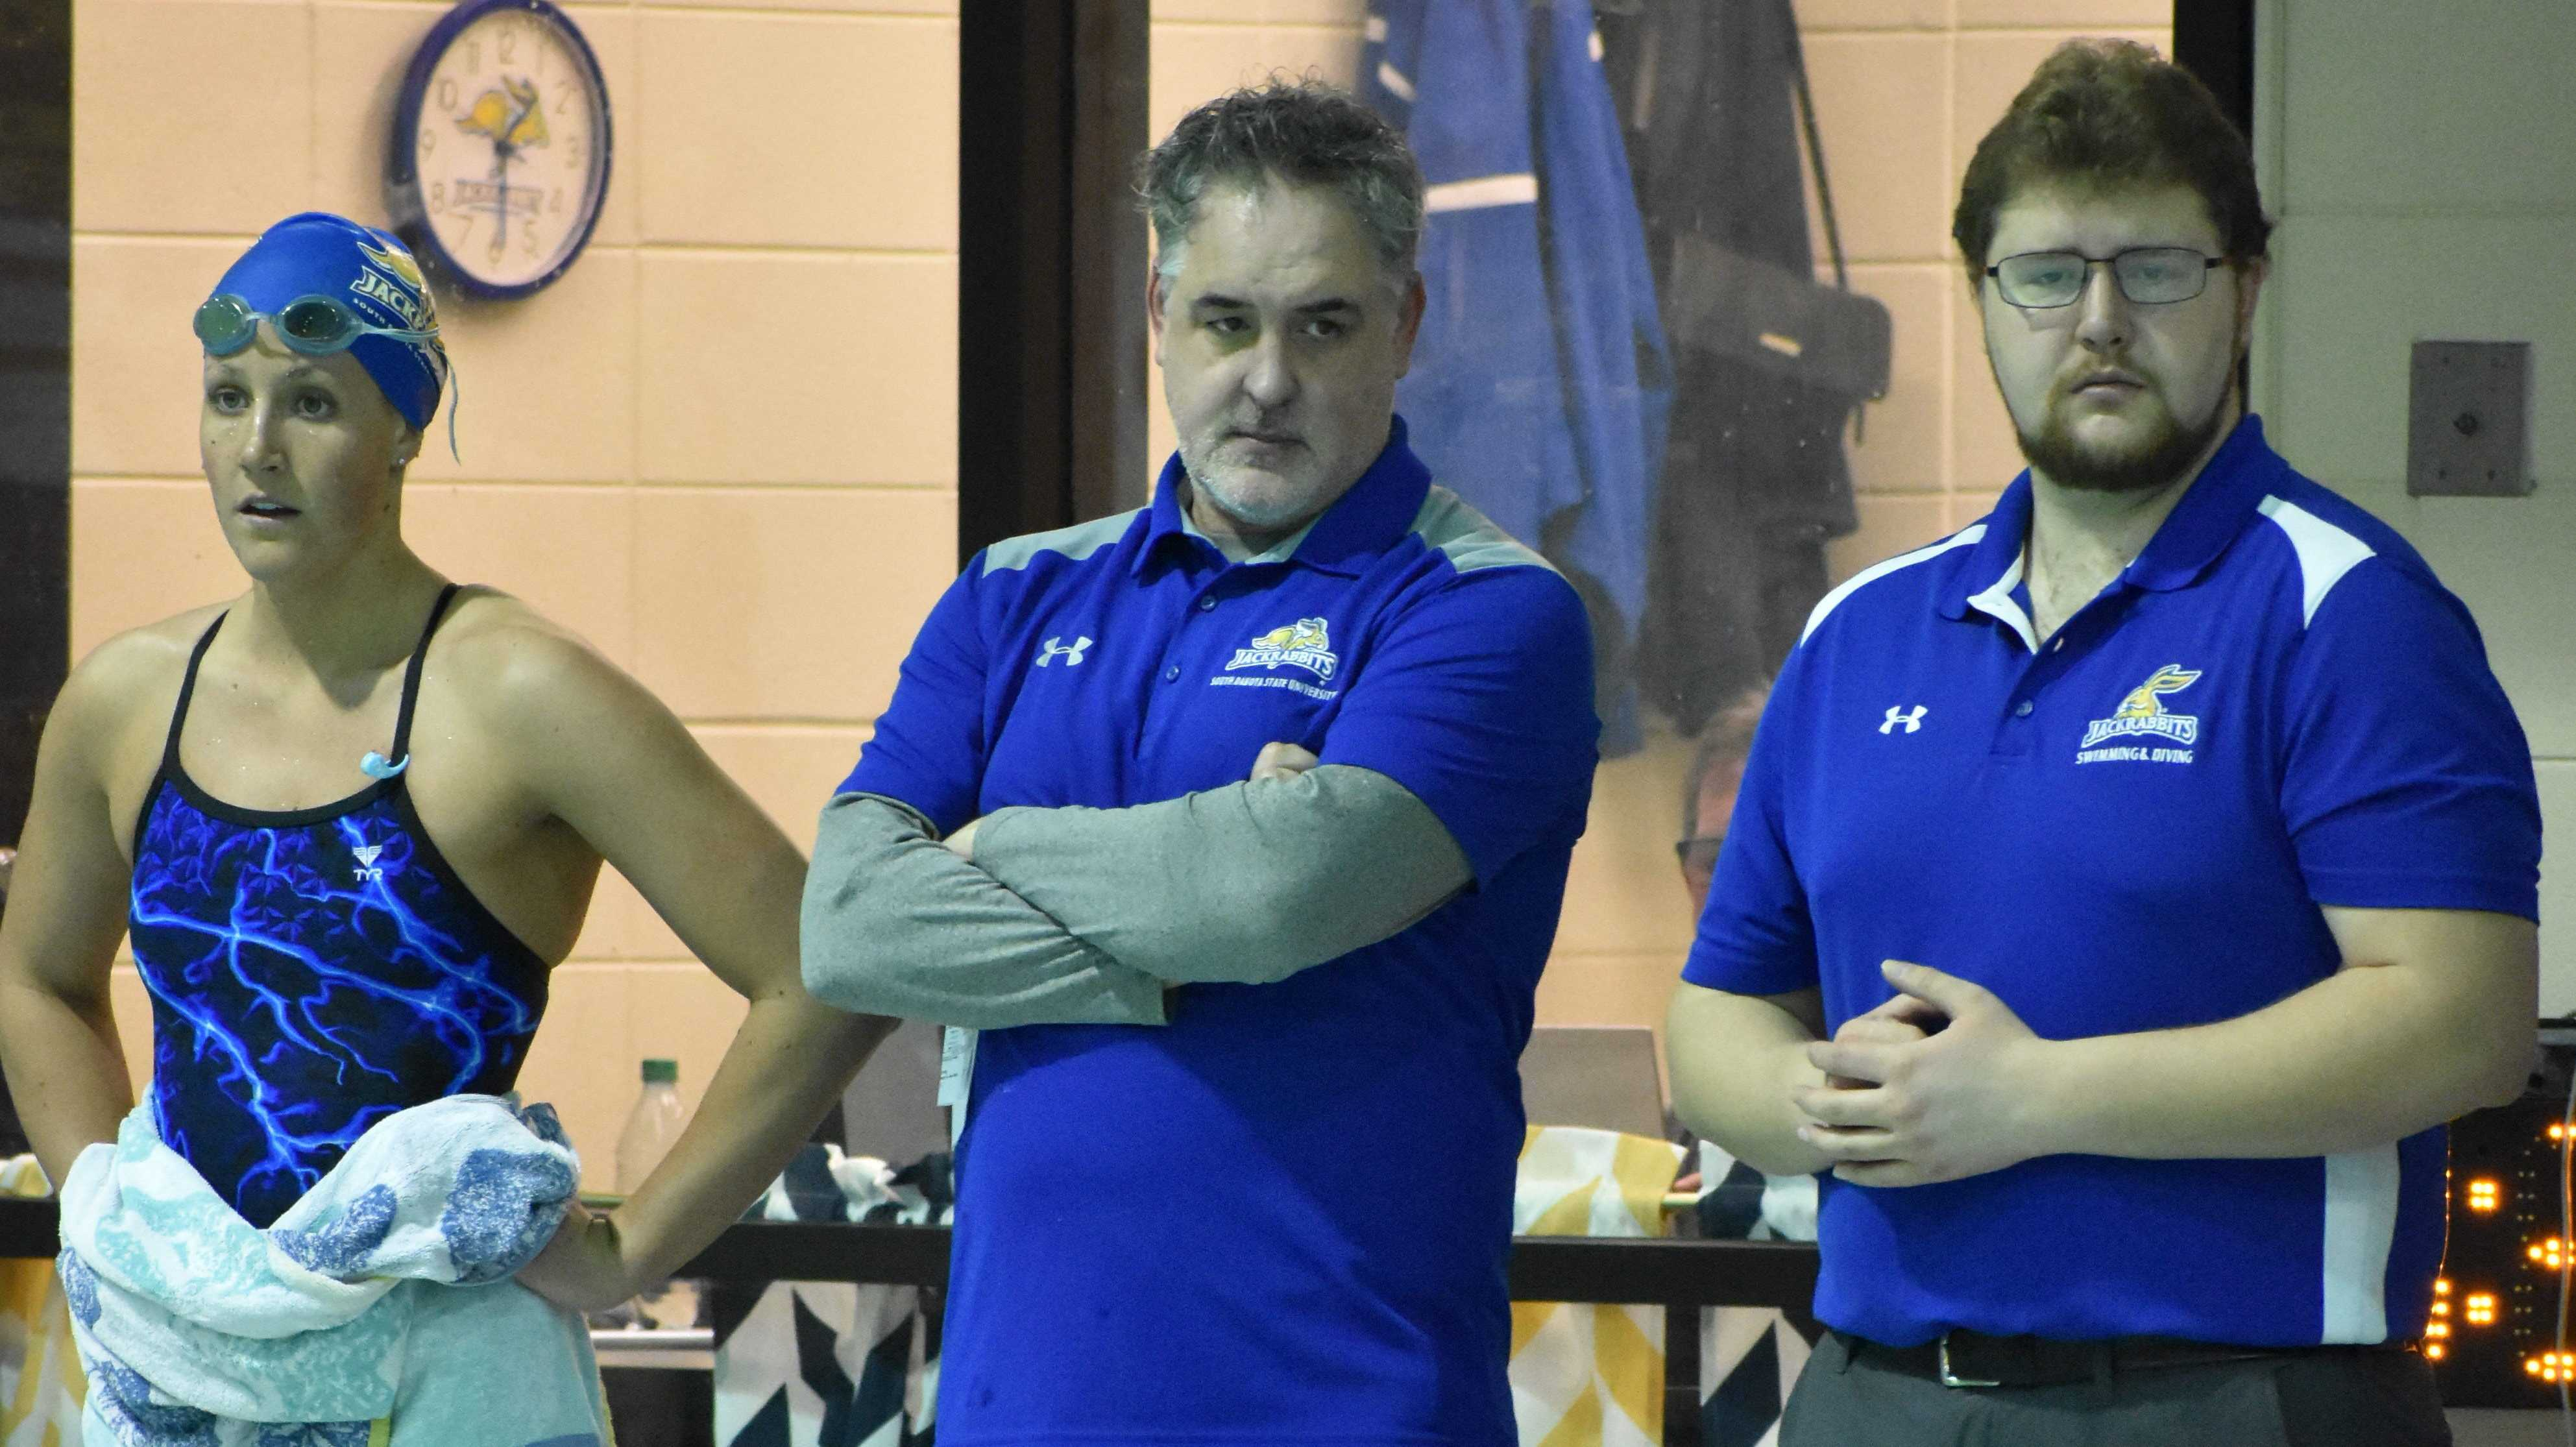 ABBY FULLENKAMP Head swim coach Doug Humphrey and assistant Kaden Huntrods watch the 1,000 yard freestyle during the women's swim meet against UNI Friday, Jan. 26. The women's team is 5-1 overall and the men's team is 3-1 overall.